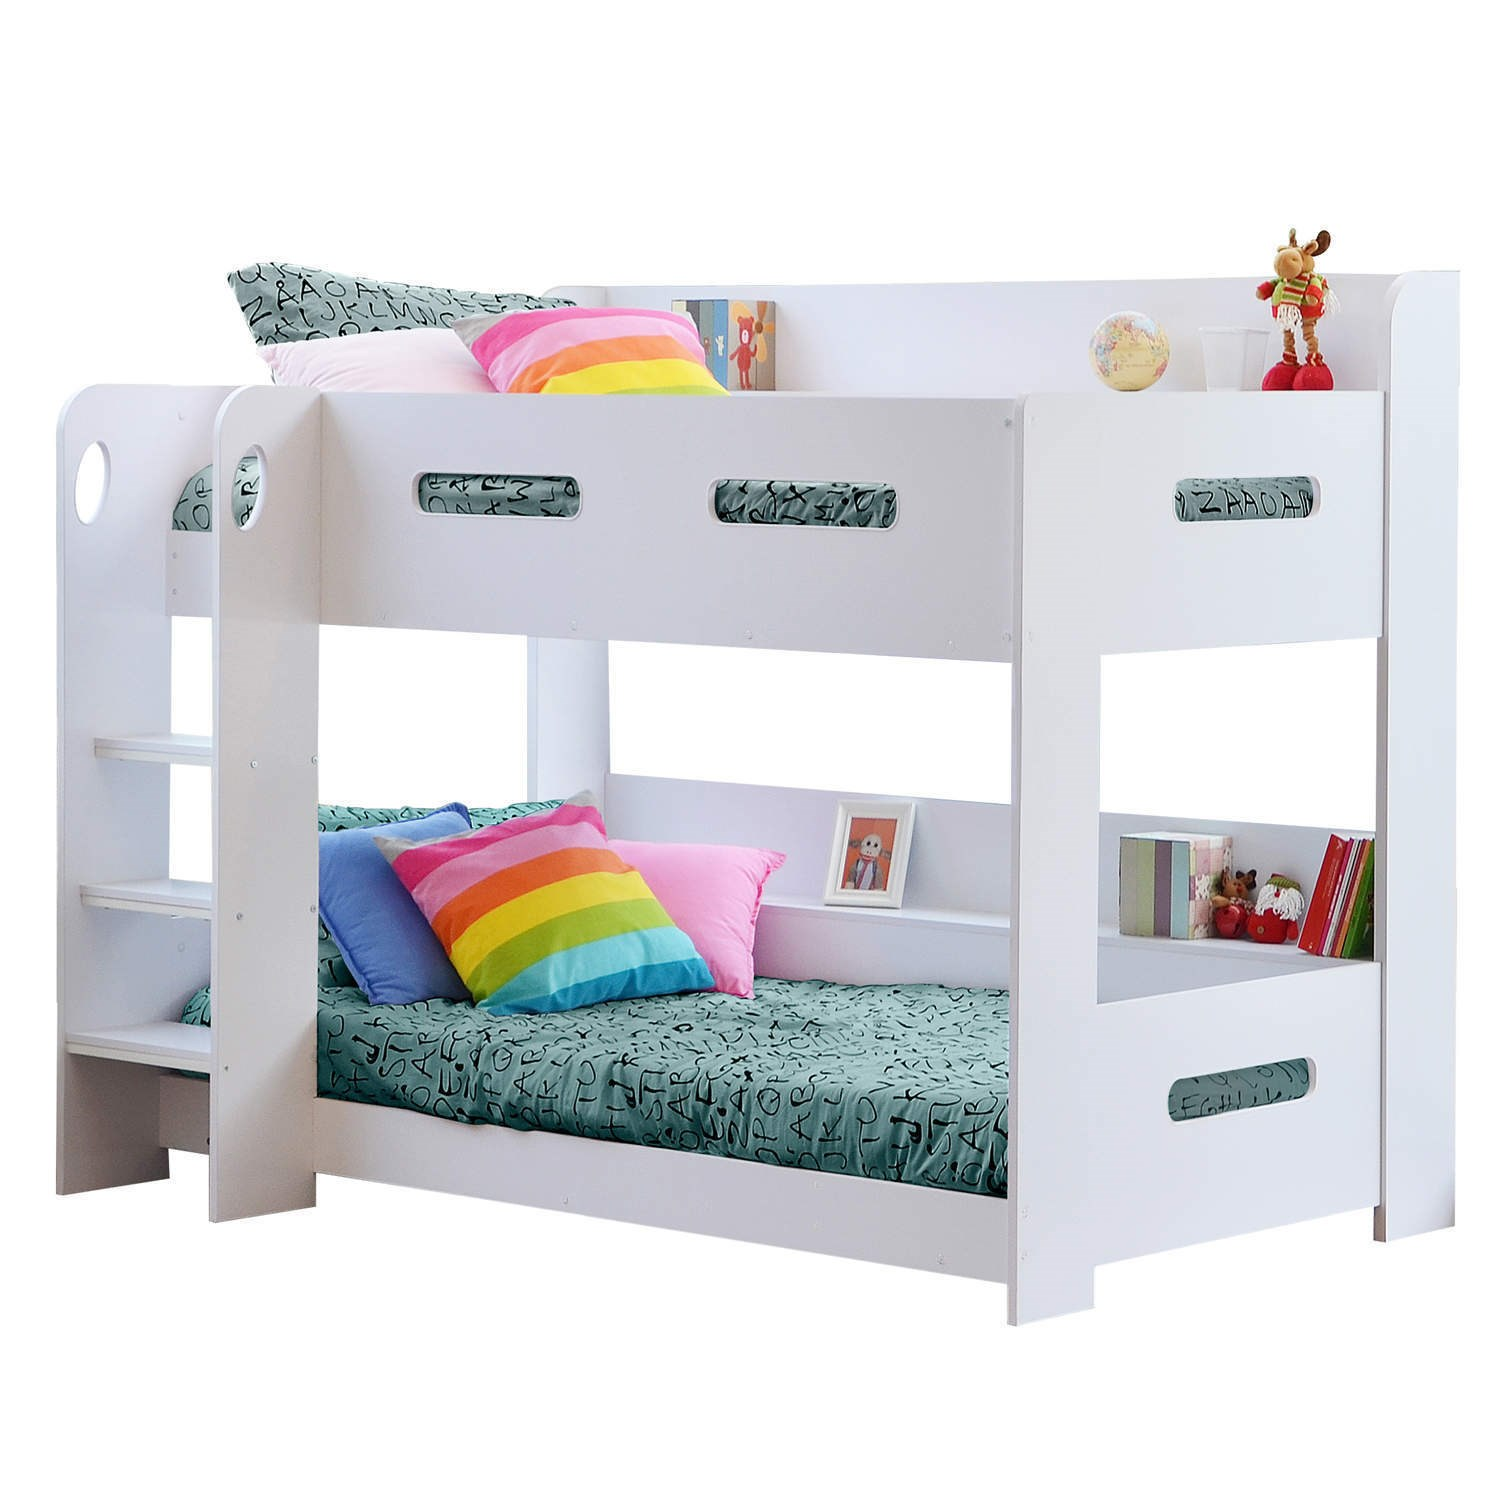 Modern kids white wooden bunk bed storage shelves ebay for Rooms to go kids sale